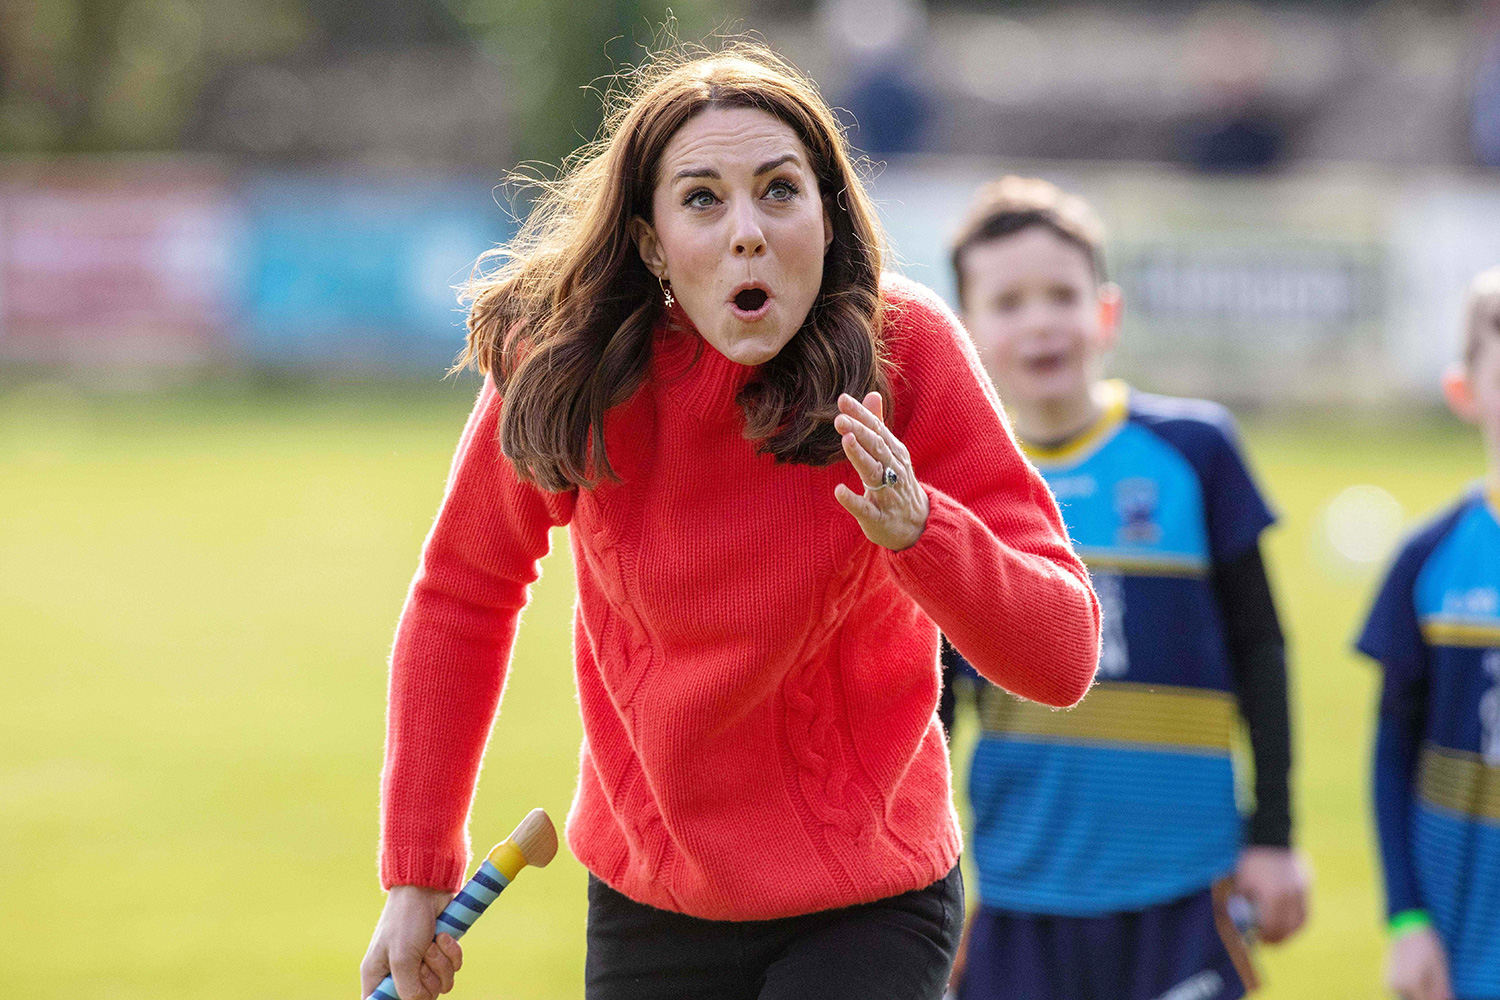 Prince William, Duke of Cambridge (L) reacts as Britain's Catherine, Duchess of Cambridge attempts to play hurling during a visit to Salthill Gaelic Athletic Association (GAA) club in Galway, western Ireland, on March 5, 2020